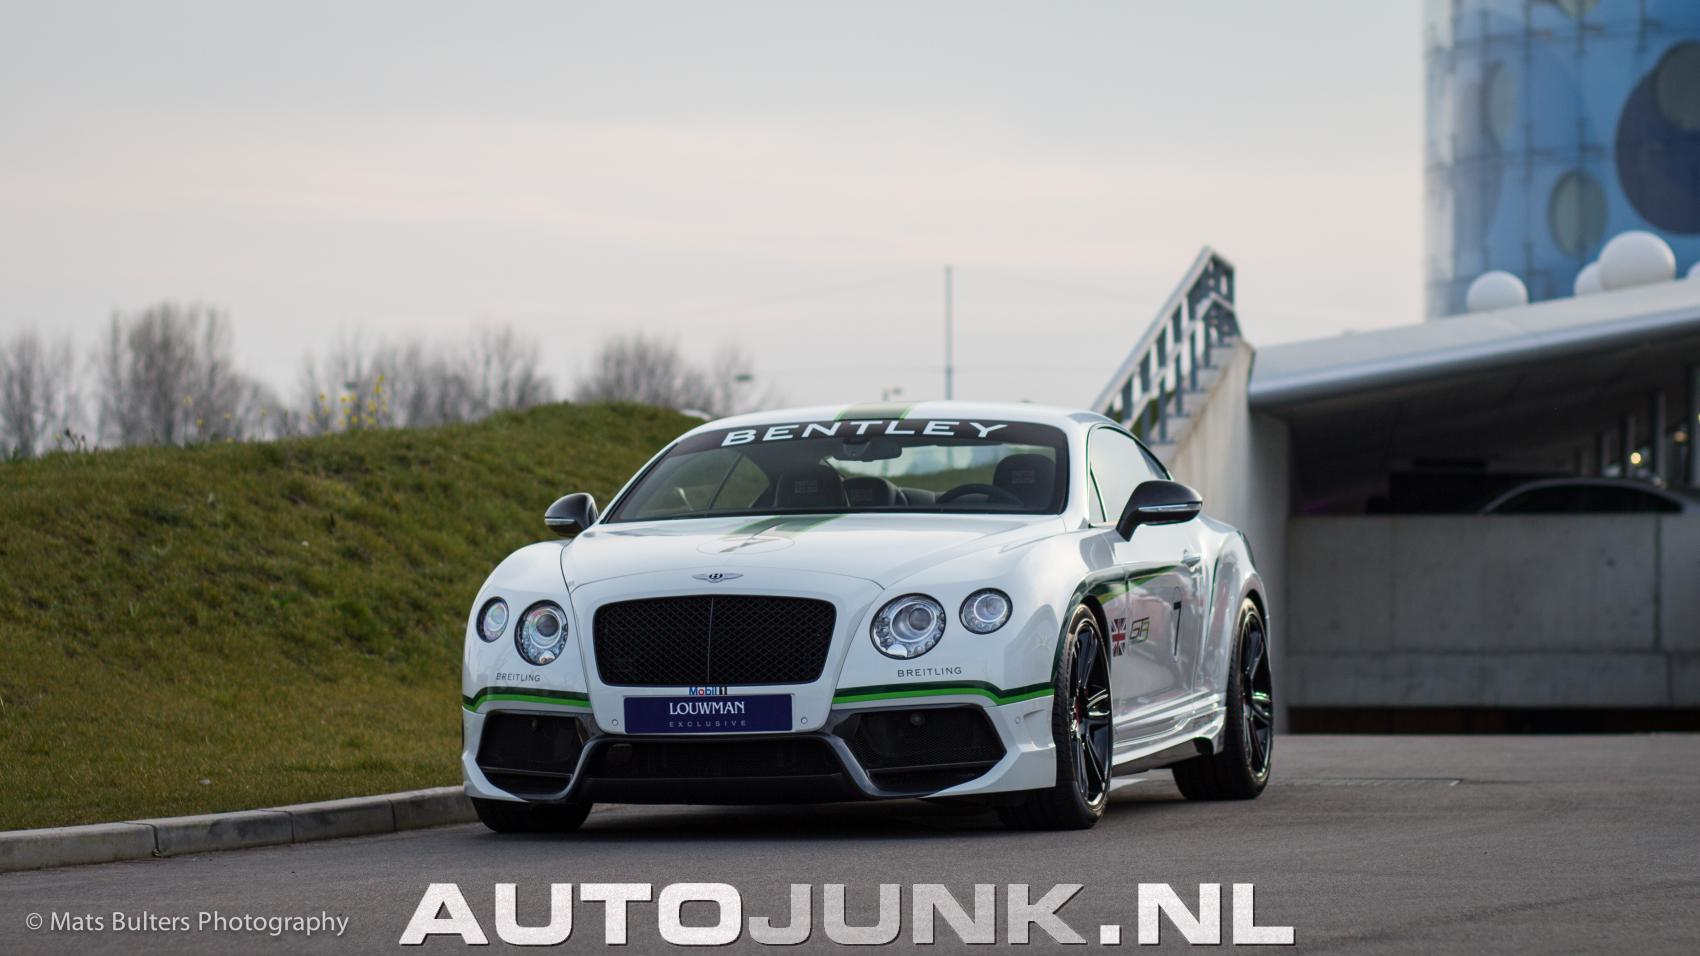 2014 Bentley Continental GT3 Racecar photo - 1